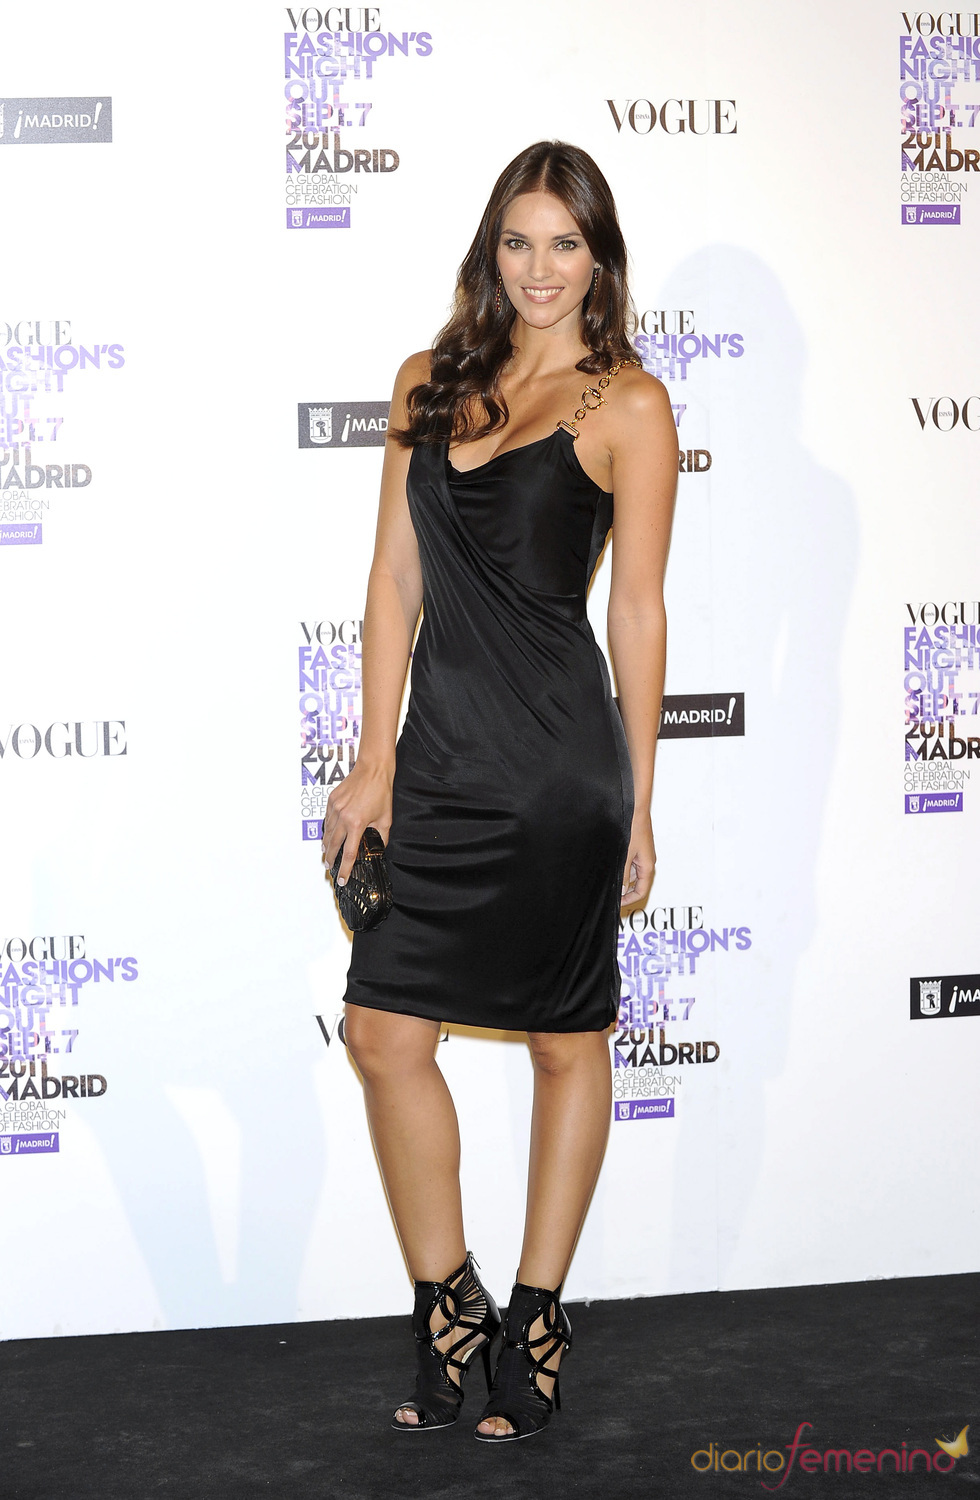 Helen Lindes durante la Vogue Fashion Night Out Madrid 2011